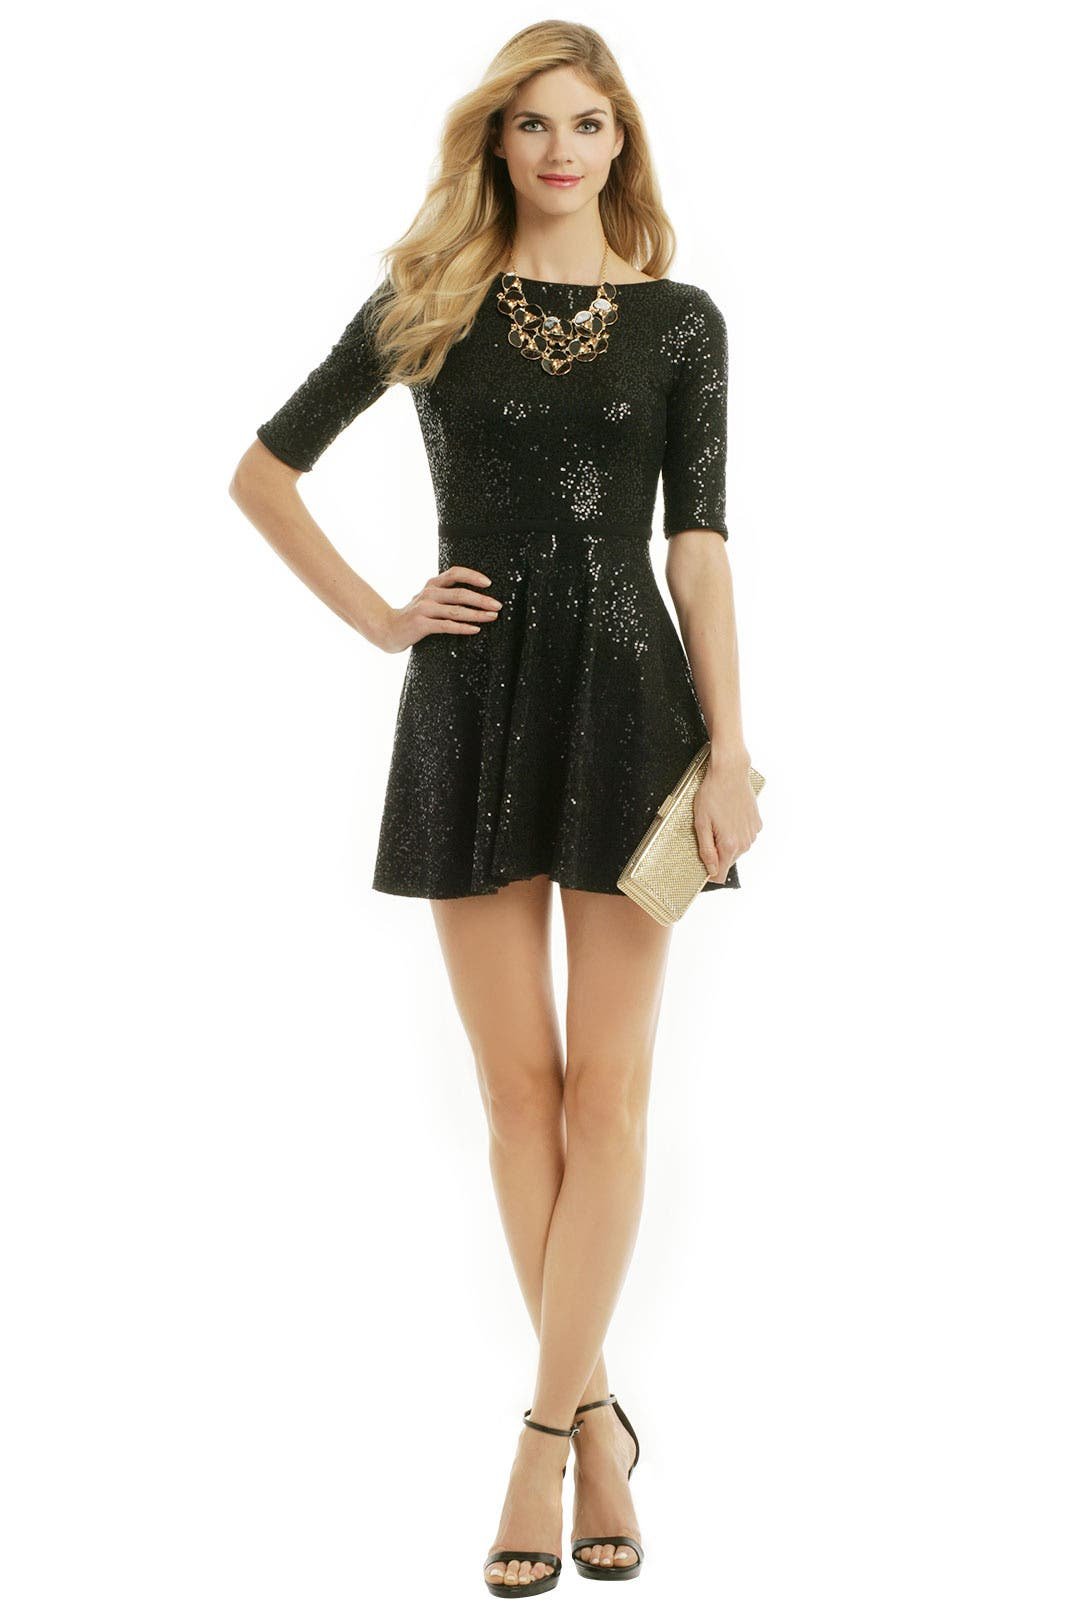 The dress for sale - The Dress For Sale 49